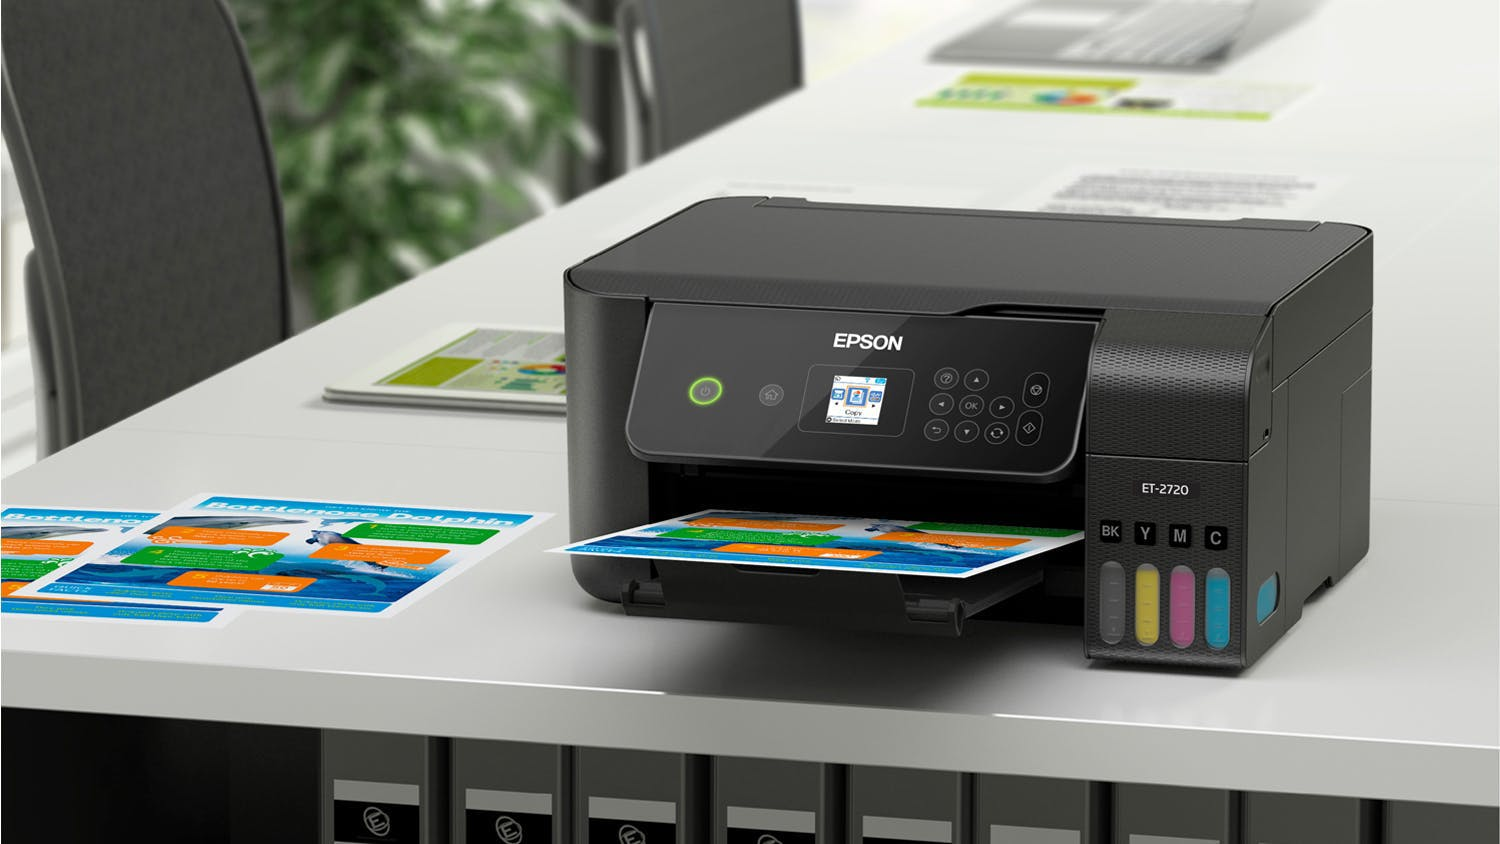 Epson ET-2720 EcoTank All-in-One Printer